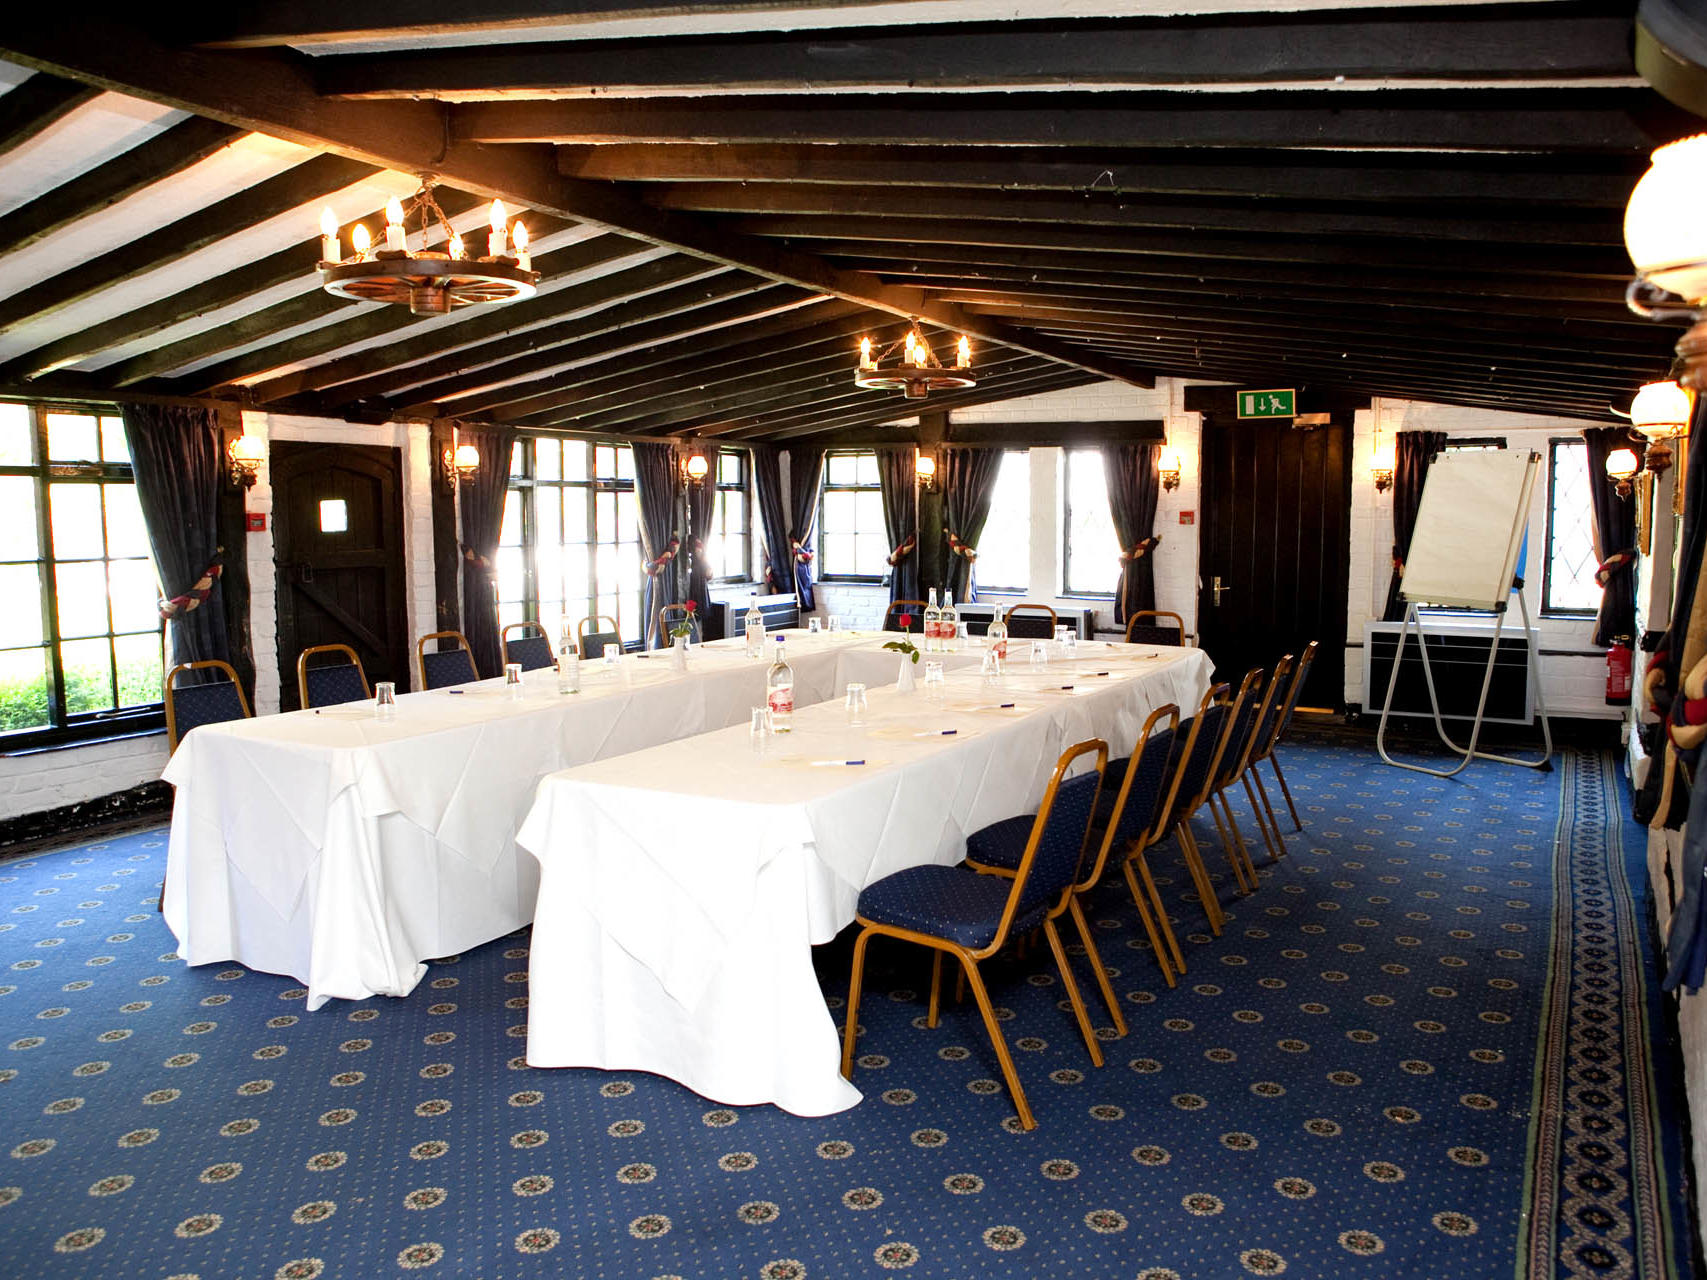 Cromwell Room at Barn Hotel Ruislip near London